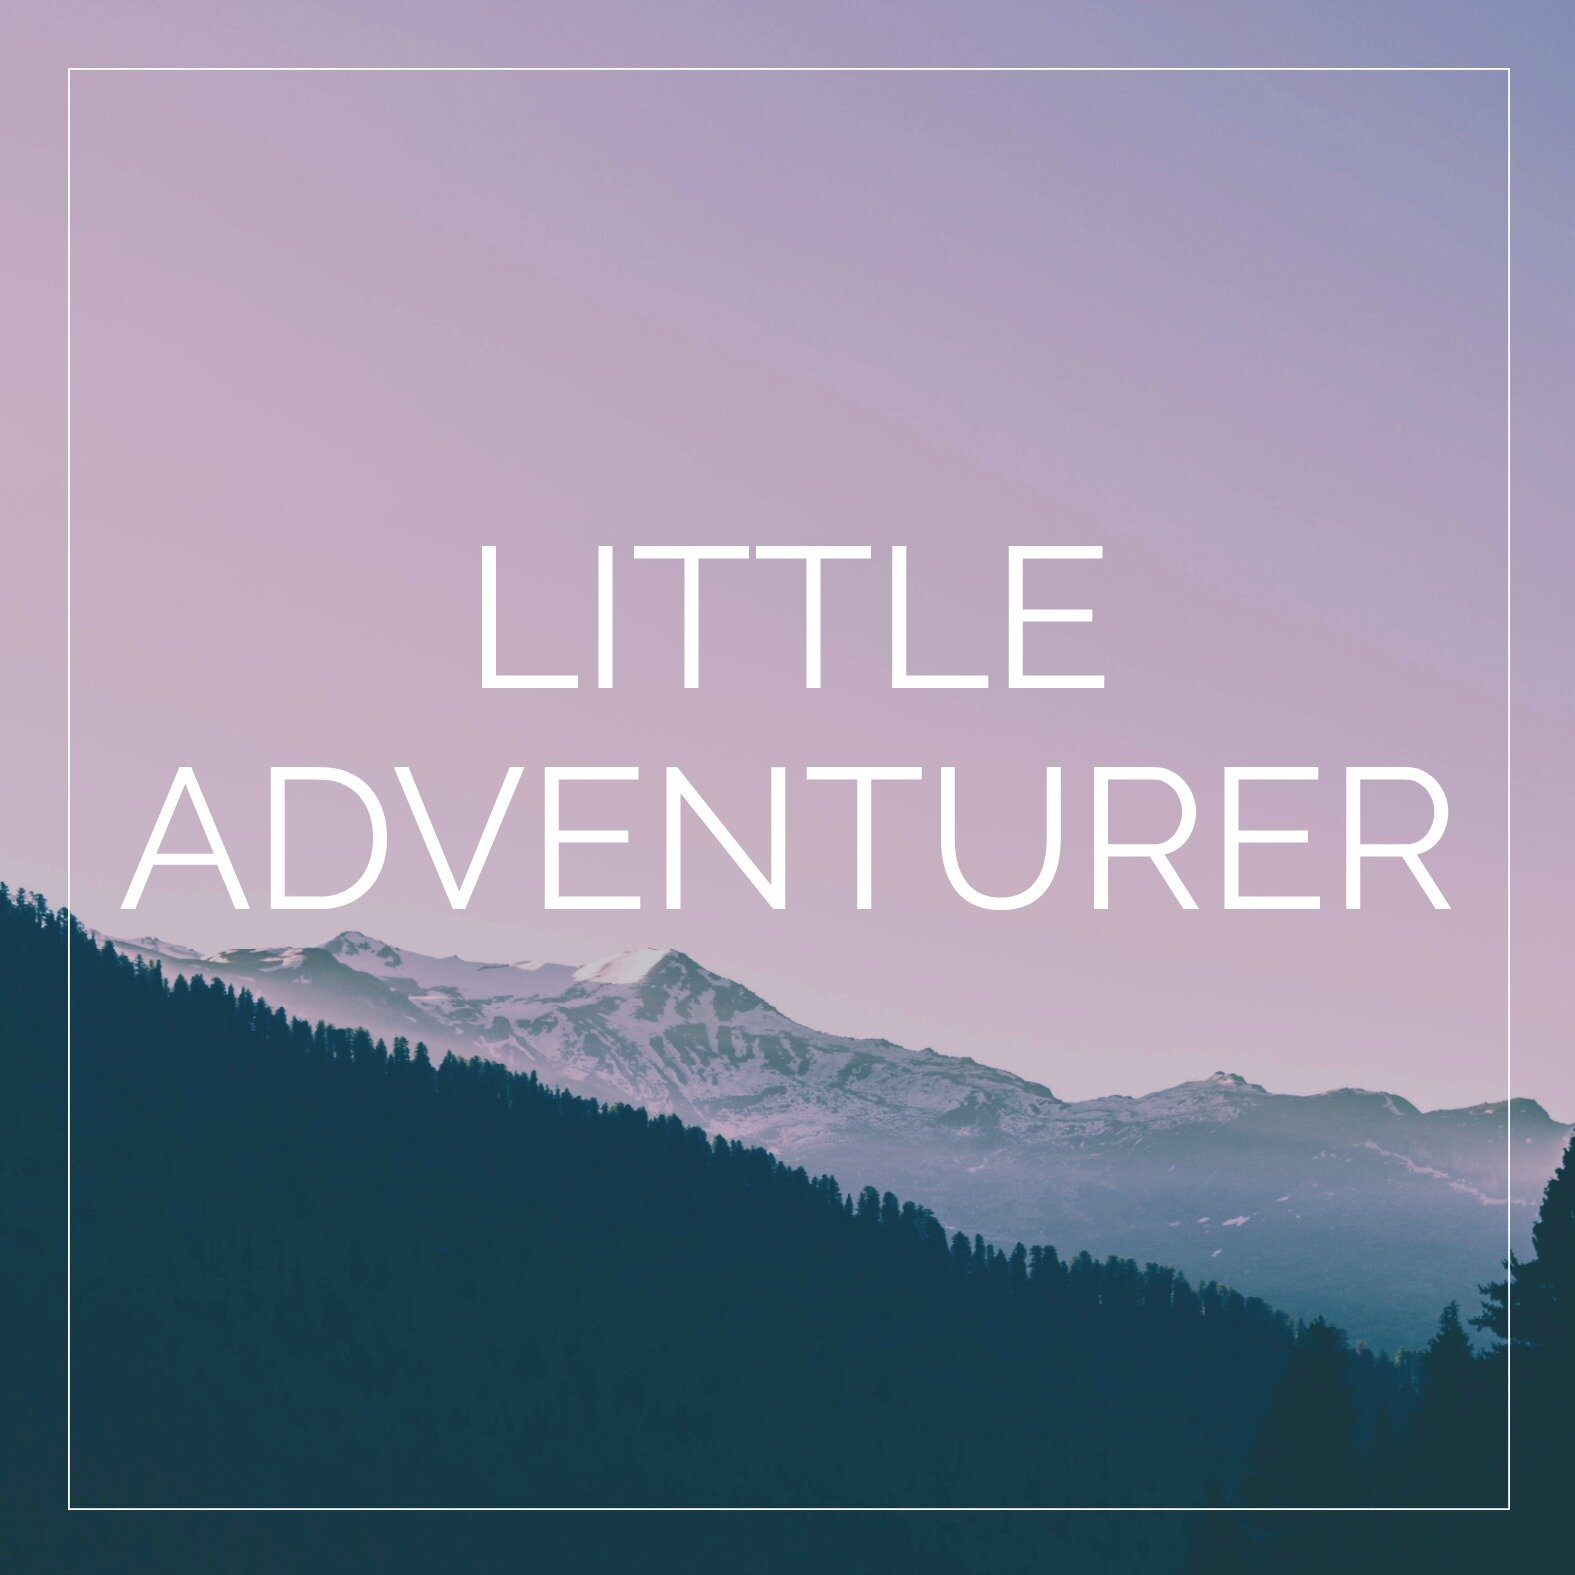 Little Adventurer.jpg